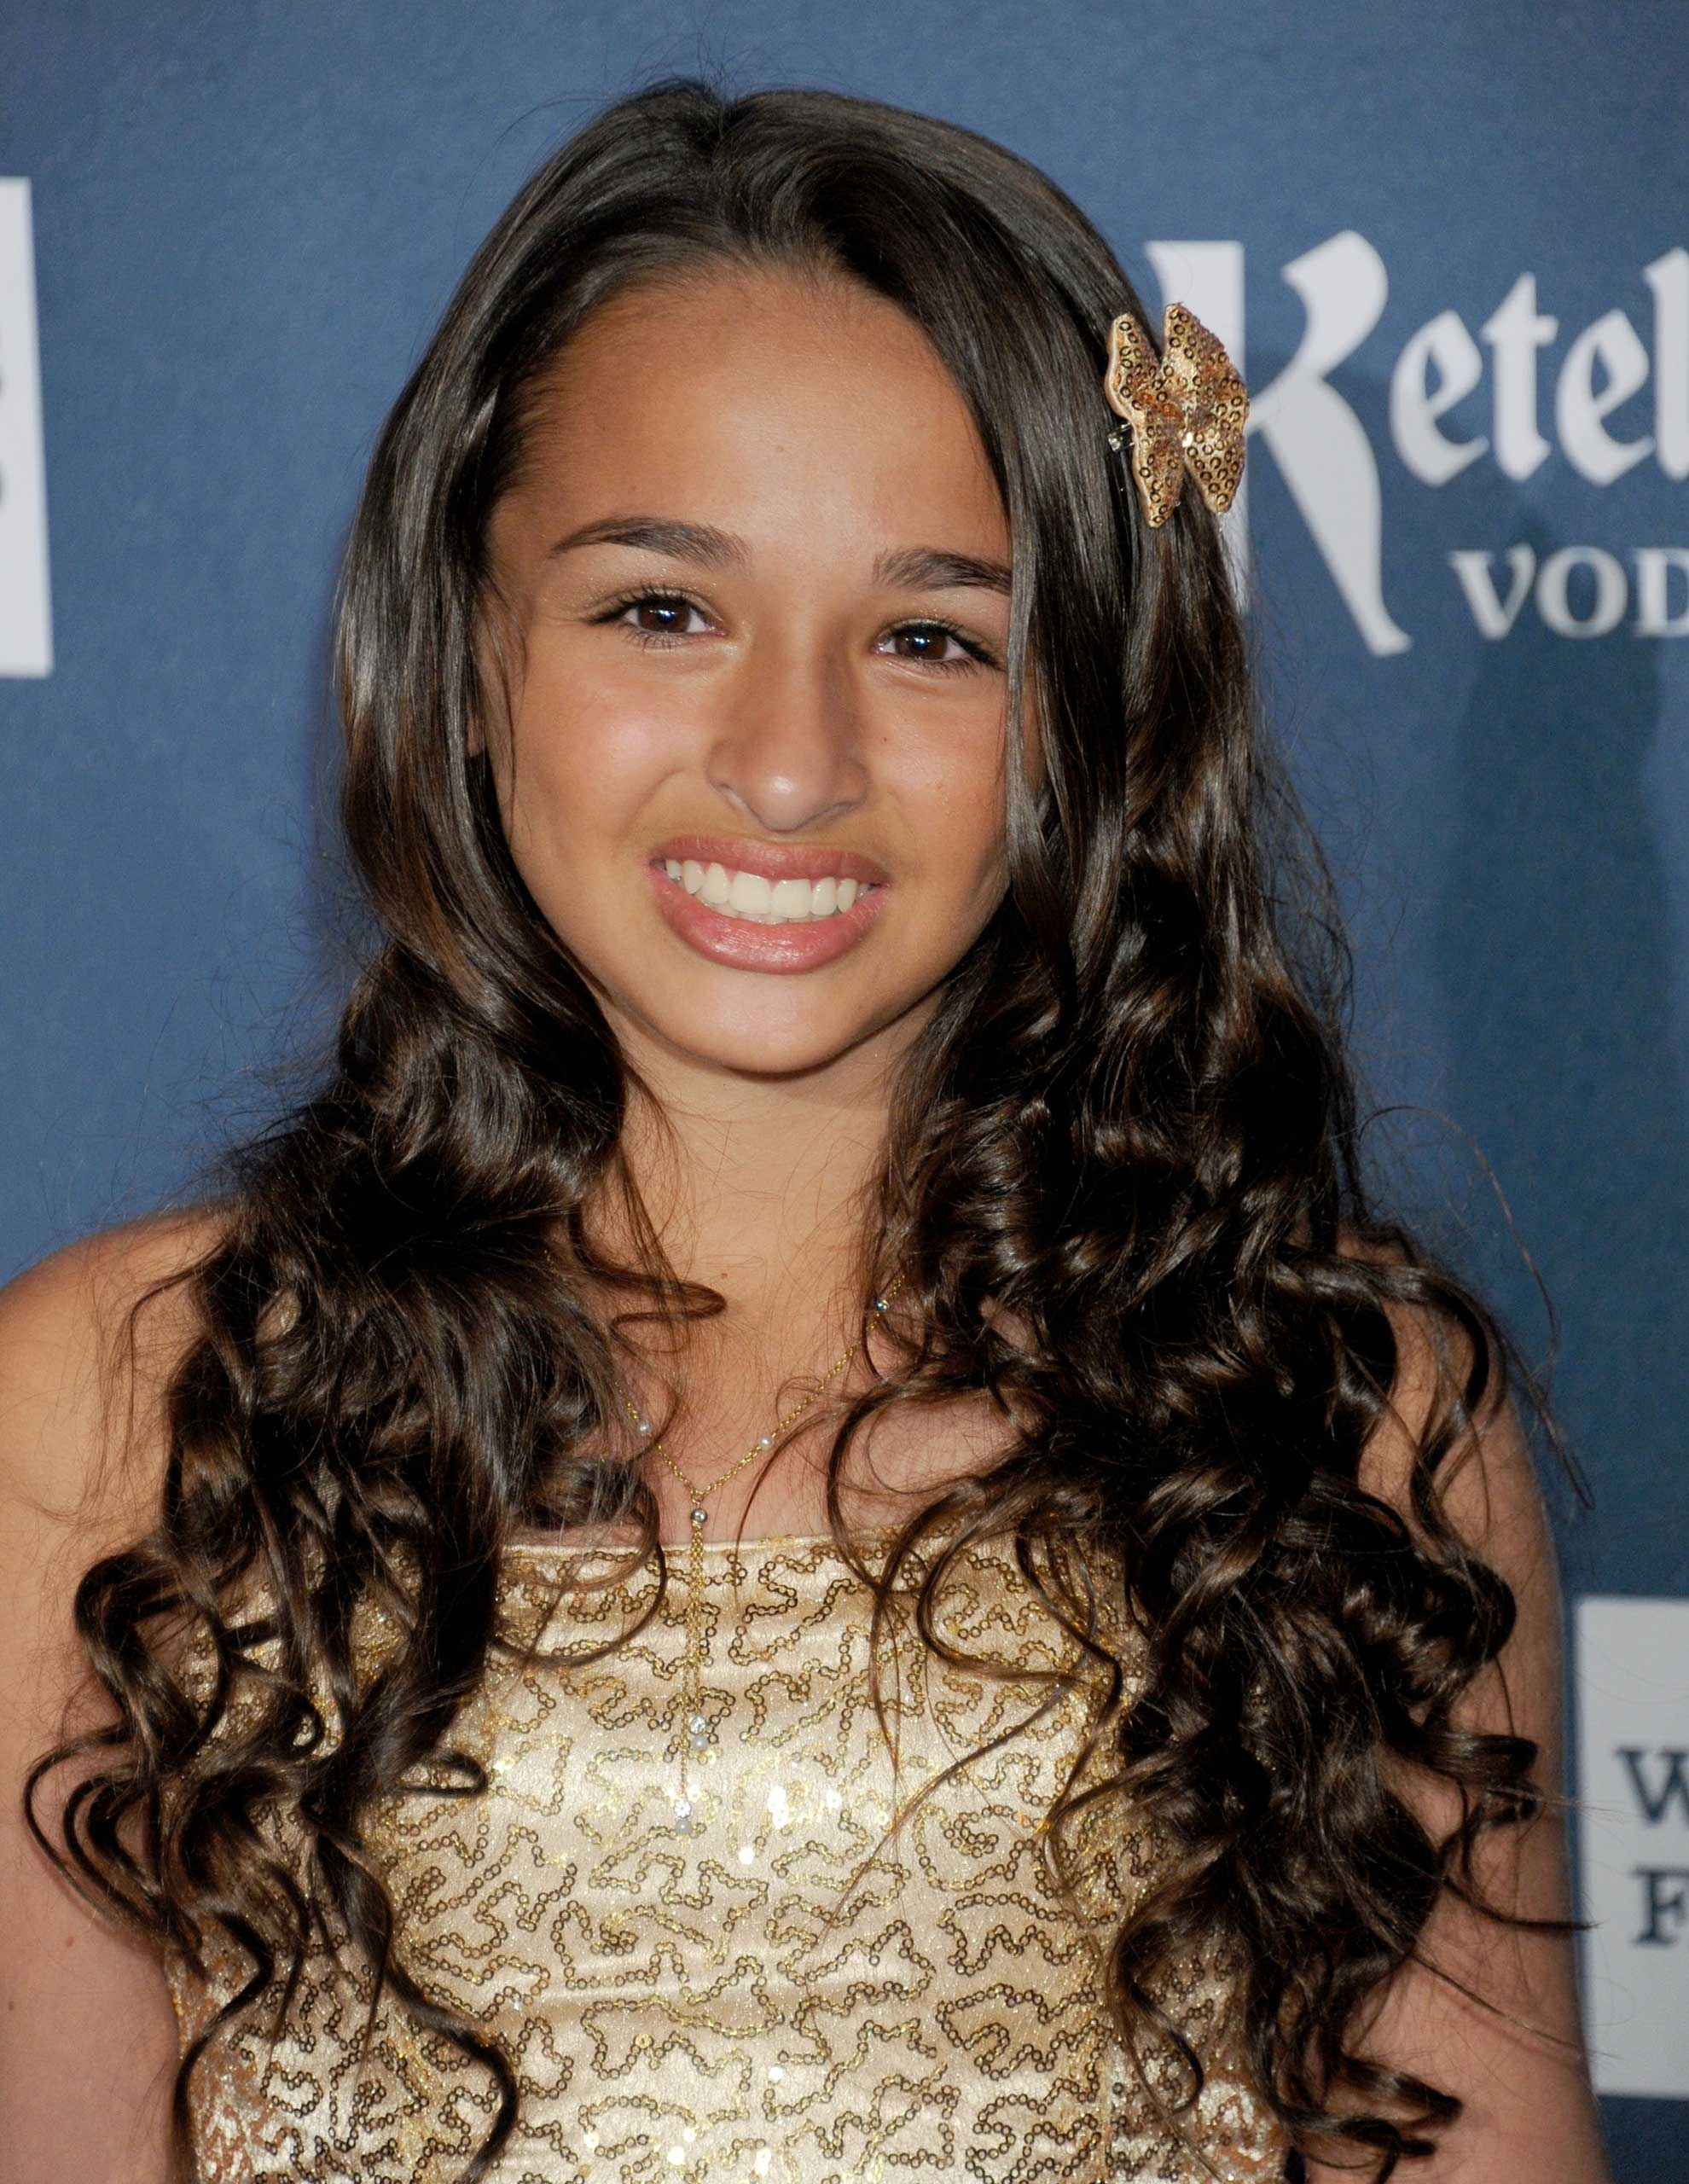 Jazz Jennings arrives at the 24th Annual GLAAD Media Awards at JW Marriott Los Angeles at L.A. LIVE on April 20, 2013 in Los Angeles, California. (Photo by Gregg DeGuire/WireImage)